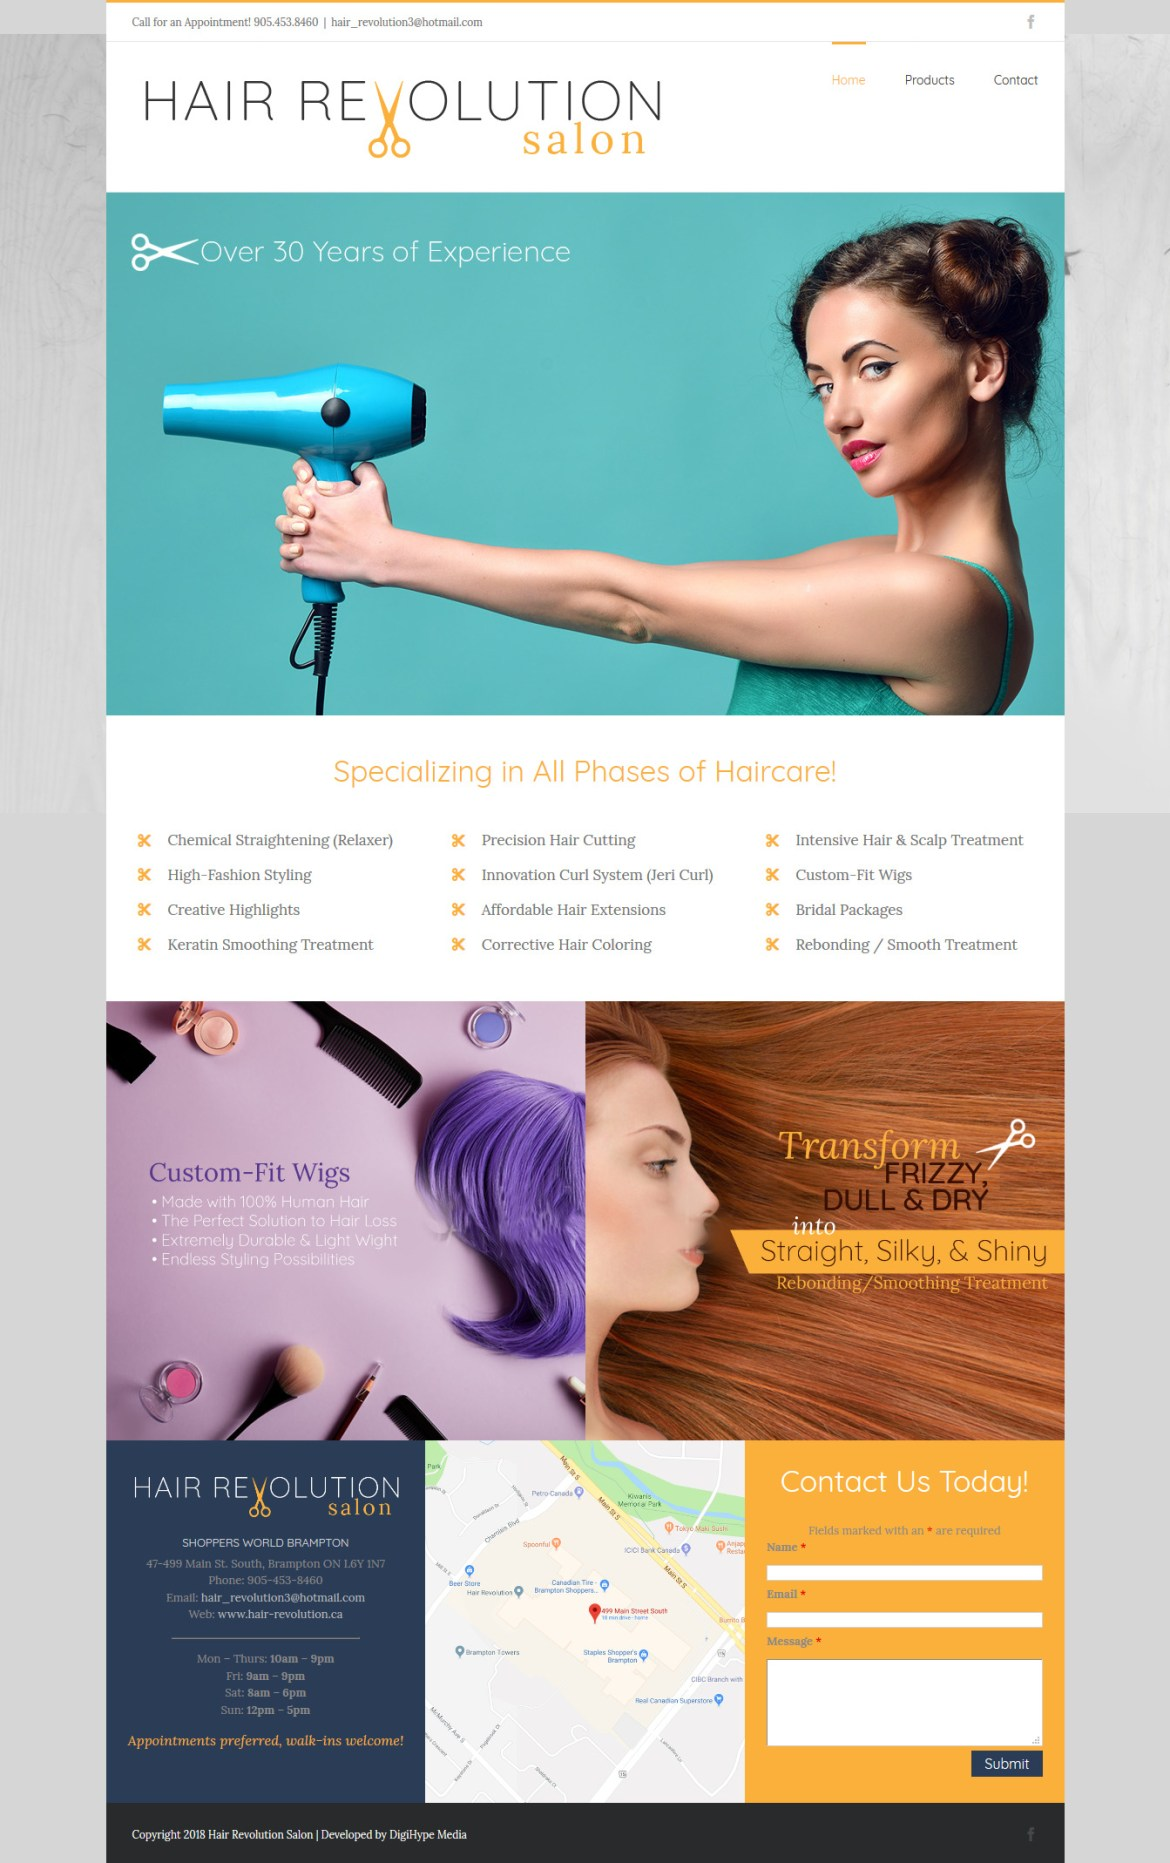 Oakville Hair Salon, Barber & Spa (Website design Mockup)